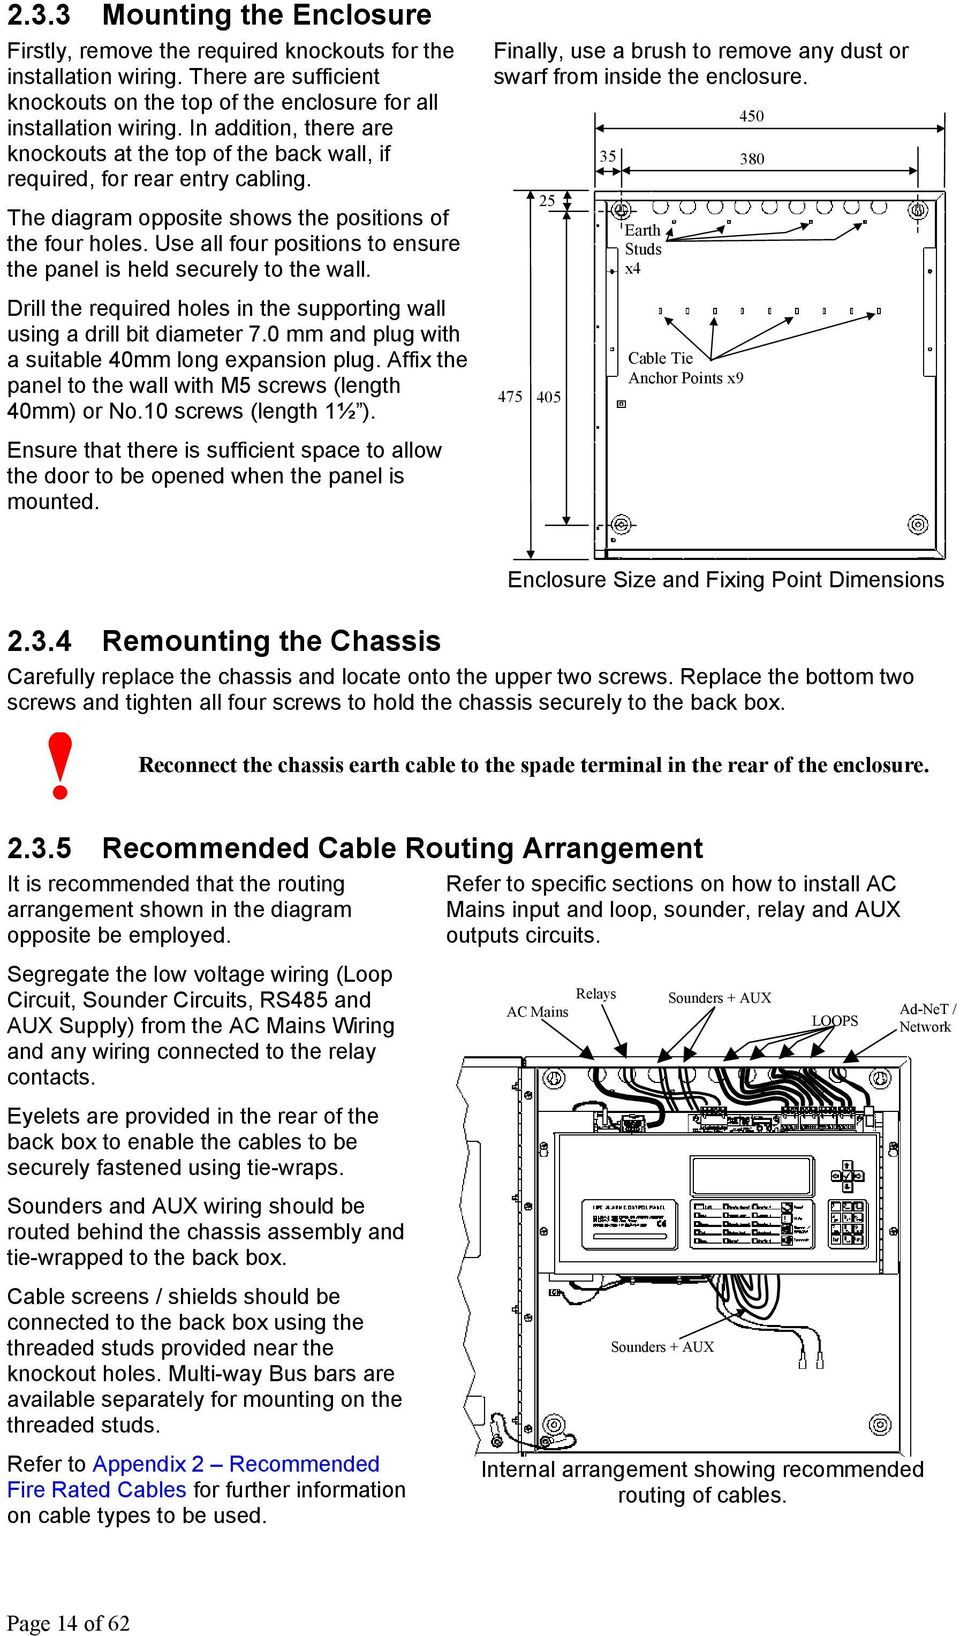 Mx 4100 4200 4400 Pdf Wiring Loop Circuit Use All Four Positions To Ensure The Panel Is Held Securely Wall Finally